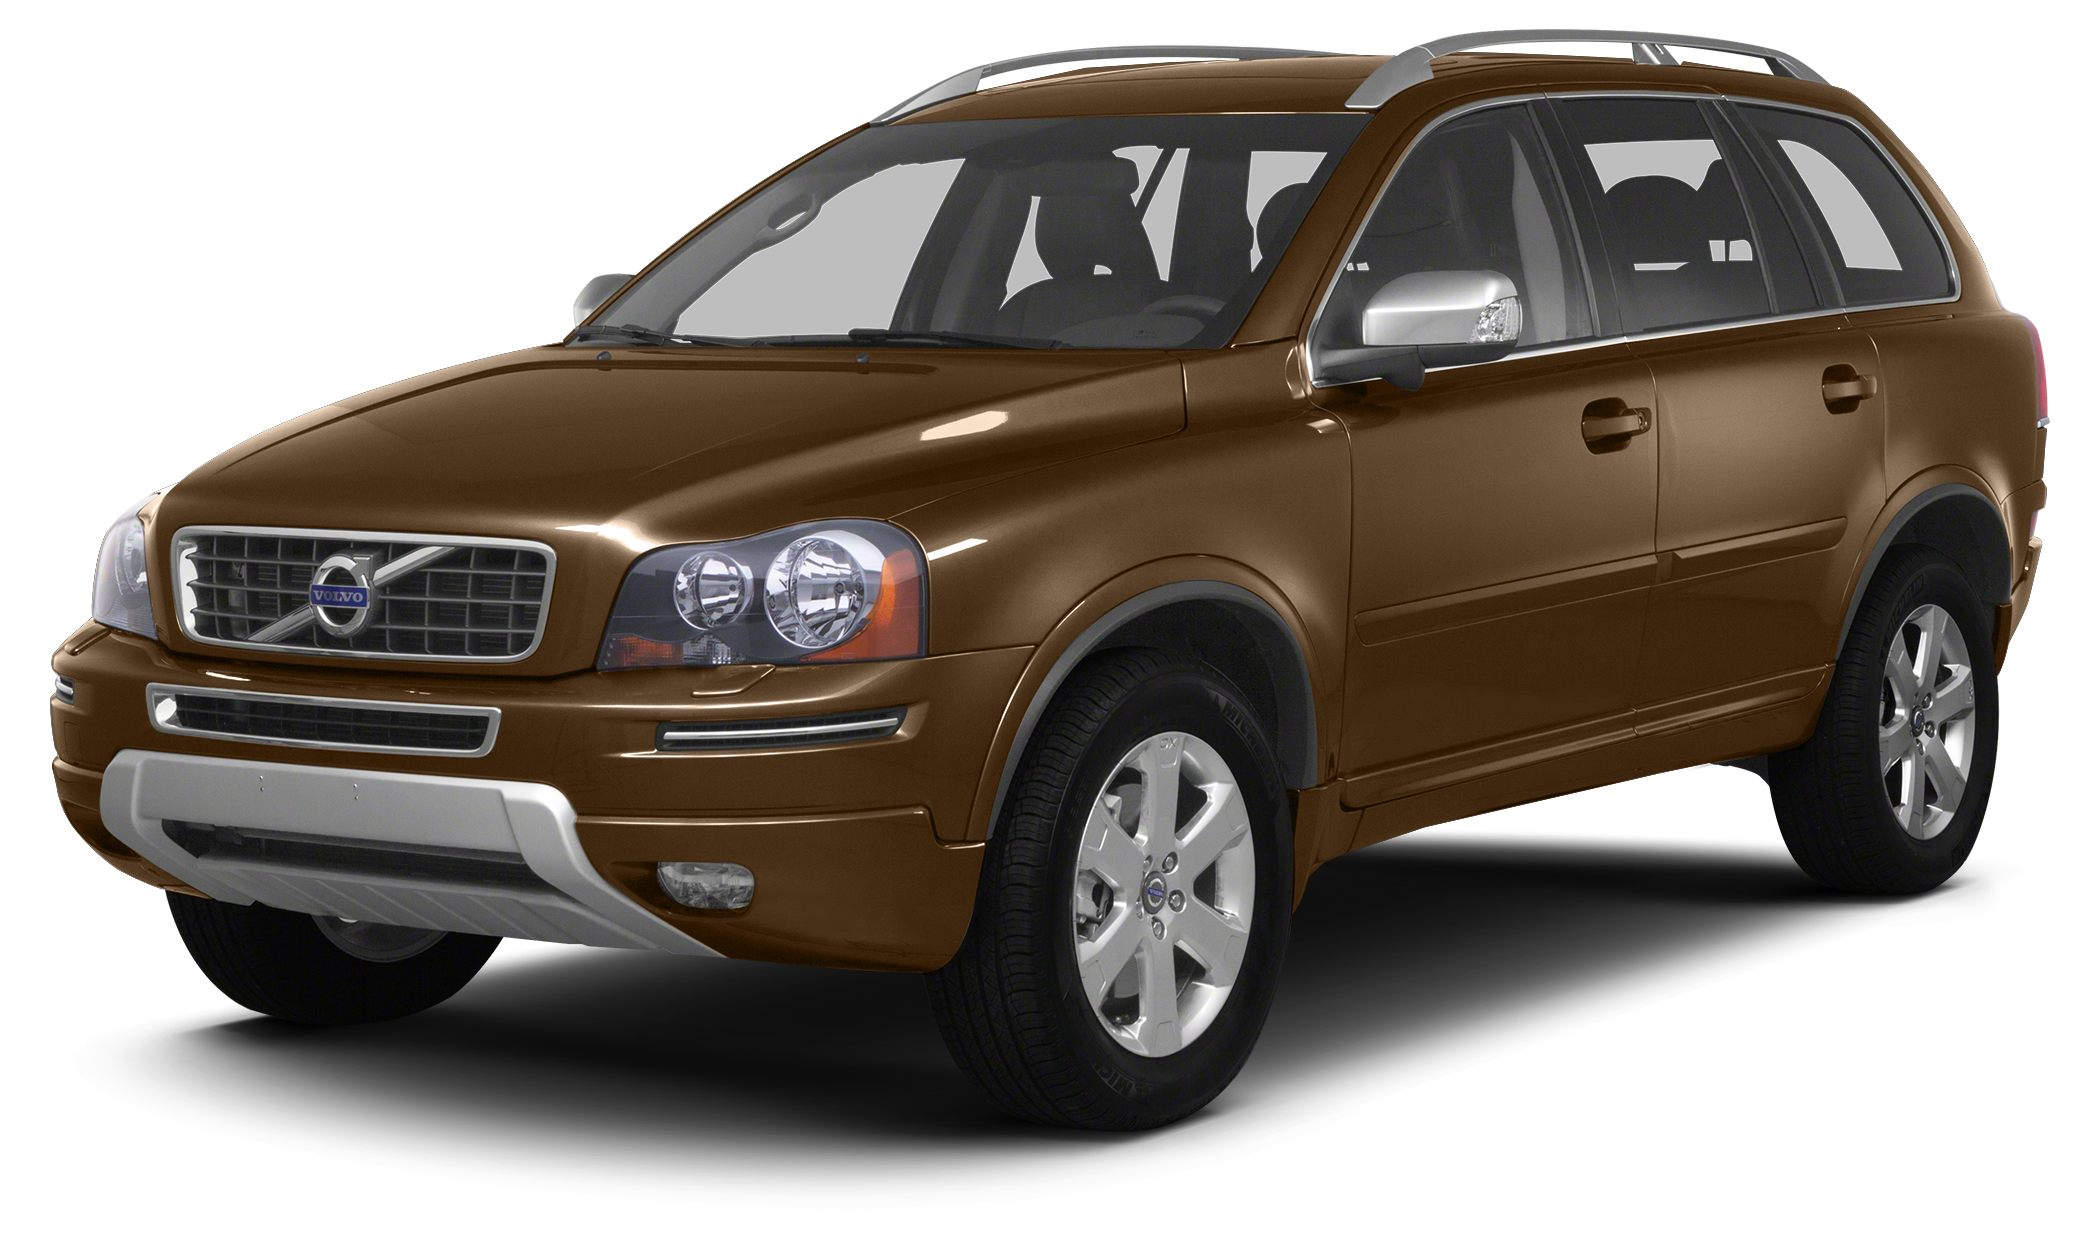 2013 Volvo XC90 32 This vehicle has passed a rigorous Multi-Point Inspection  oil  filter chang